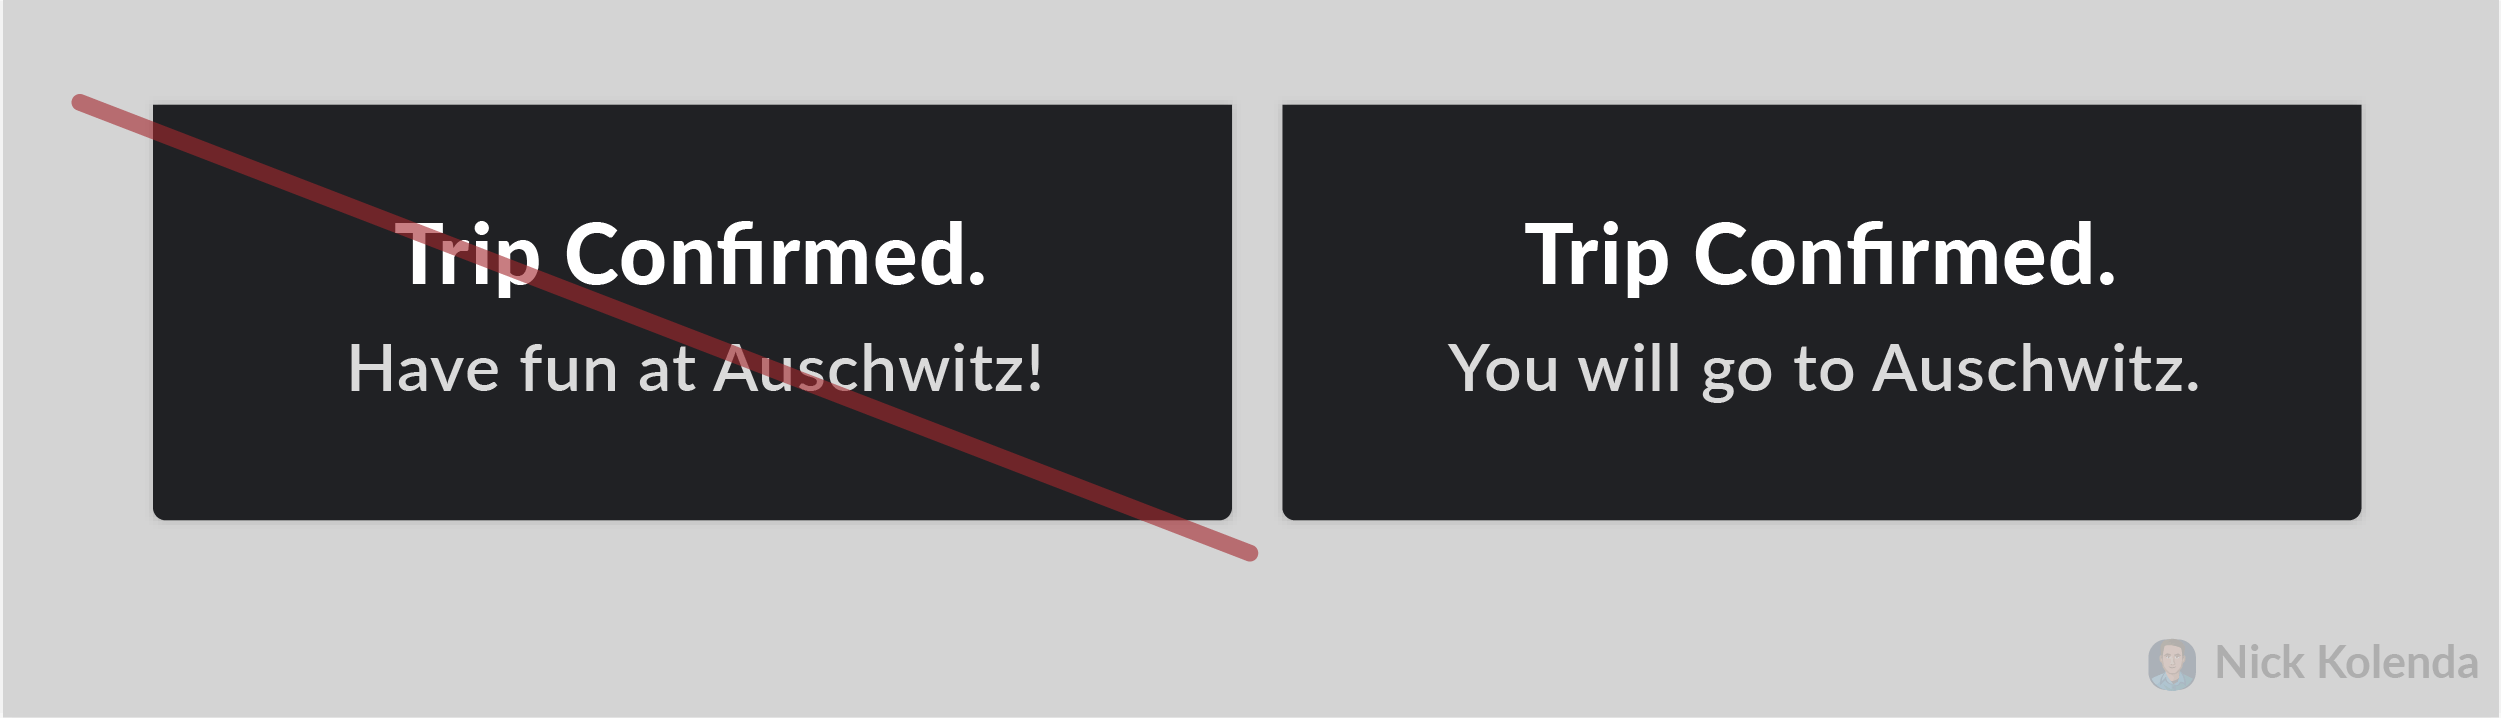 Trip Confirmed, have fun at Auswitz! vs. Trip Confirmed, you will go to Auswitz.